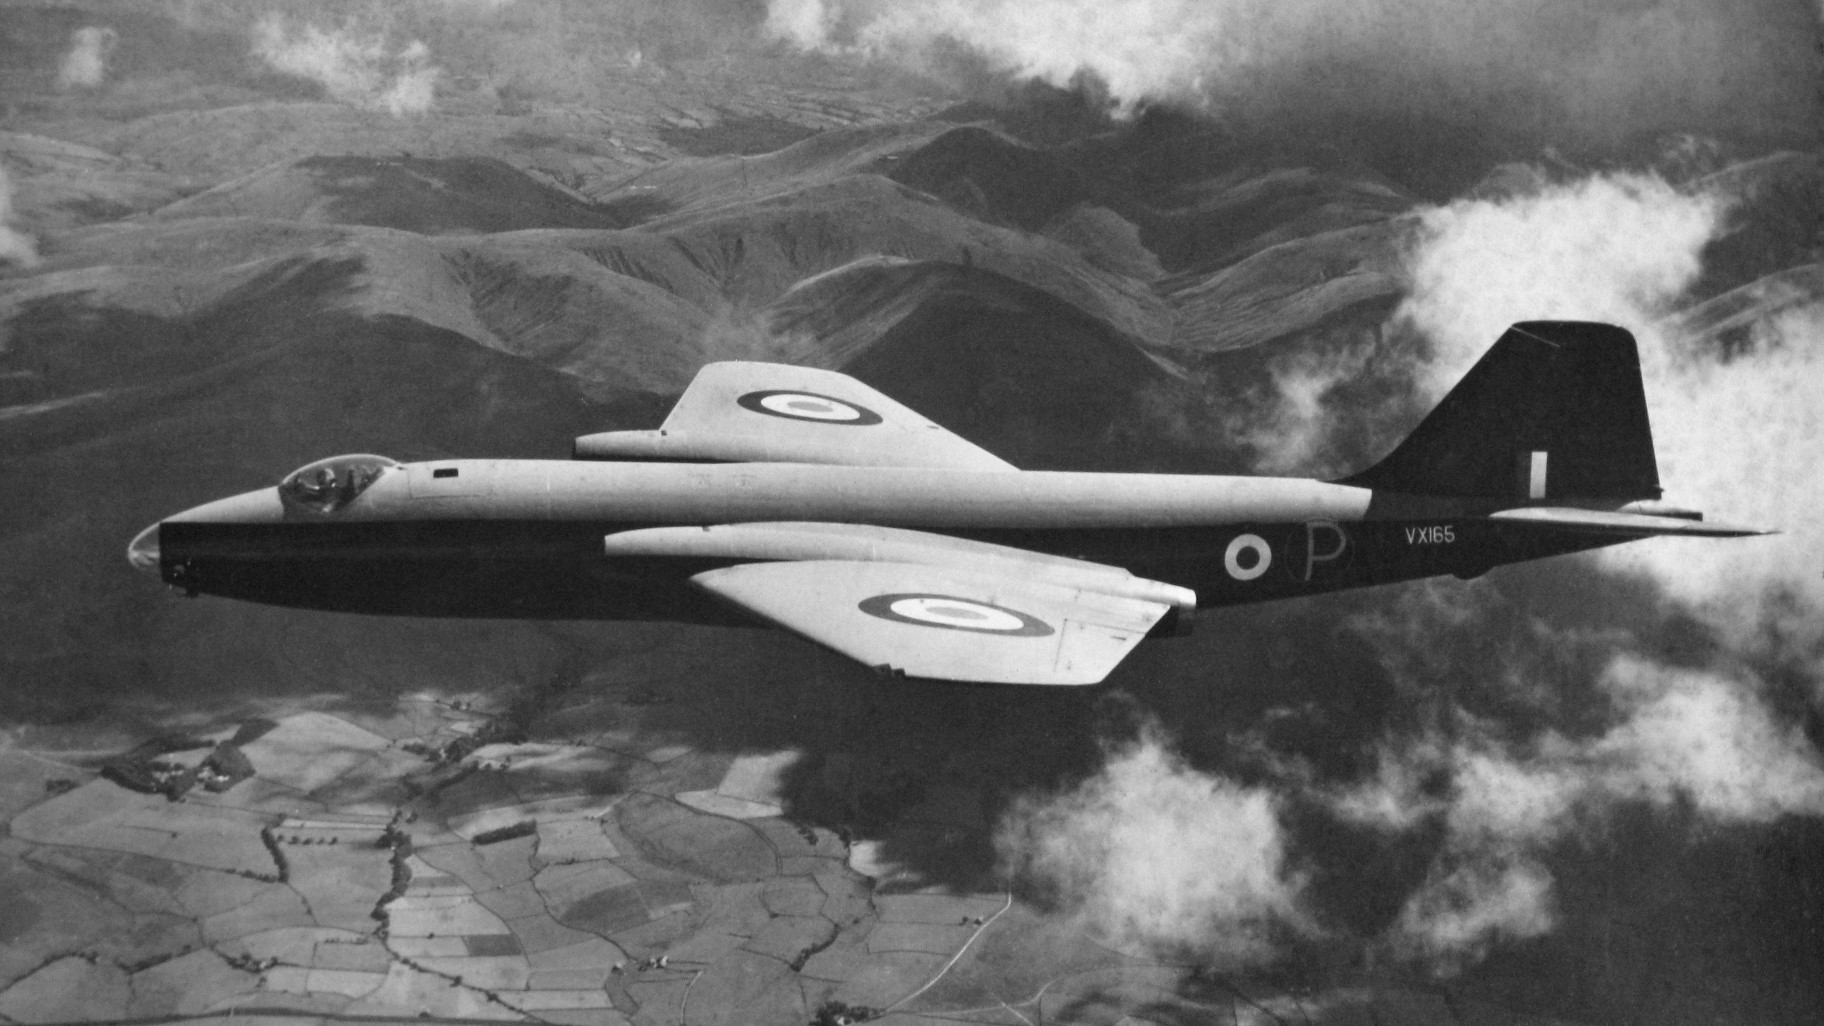 The first Canberra B2 prototype, VX165.